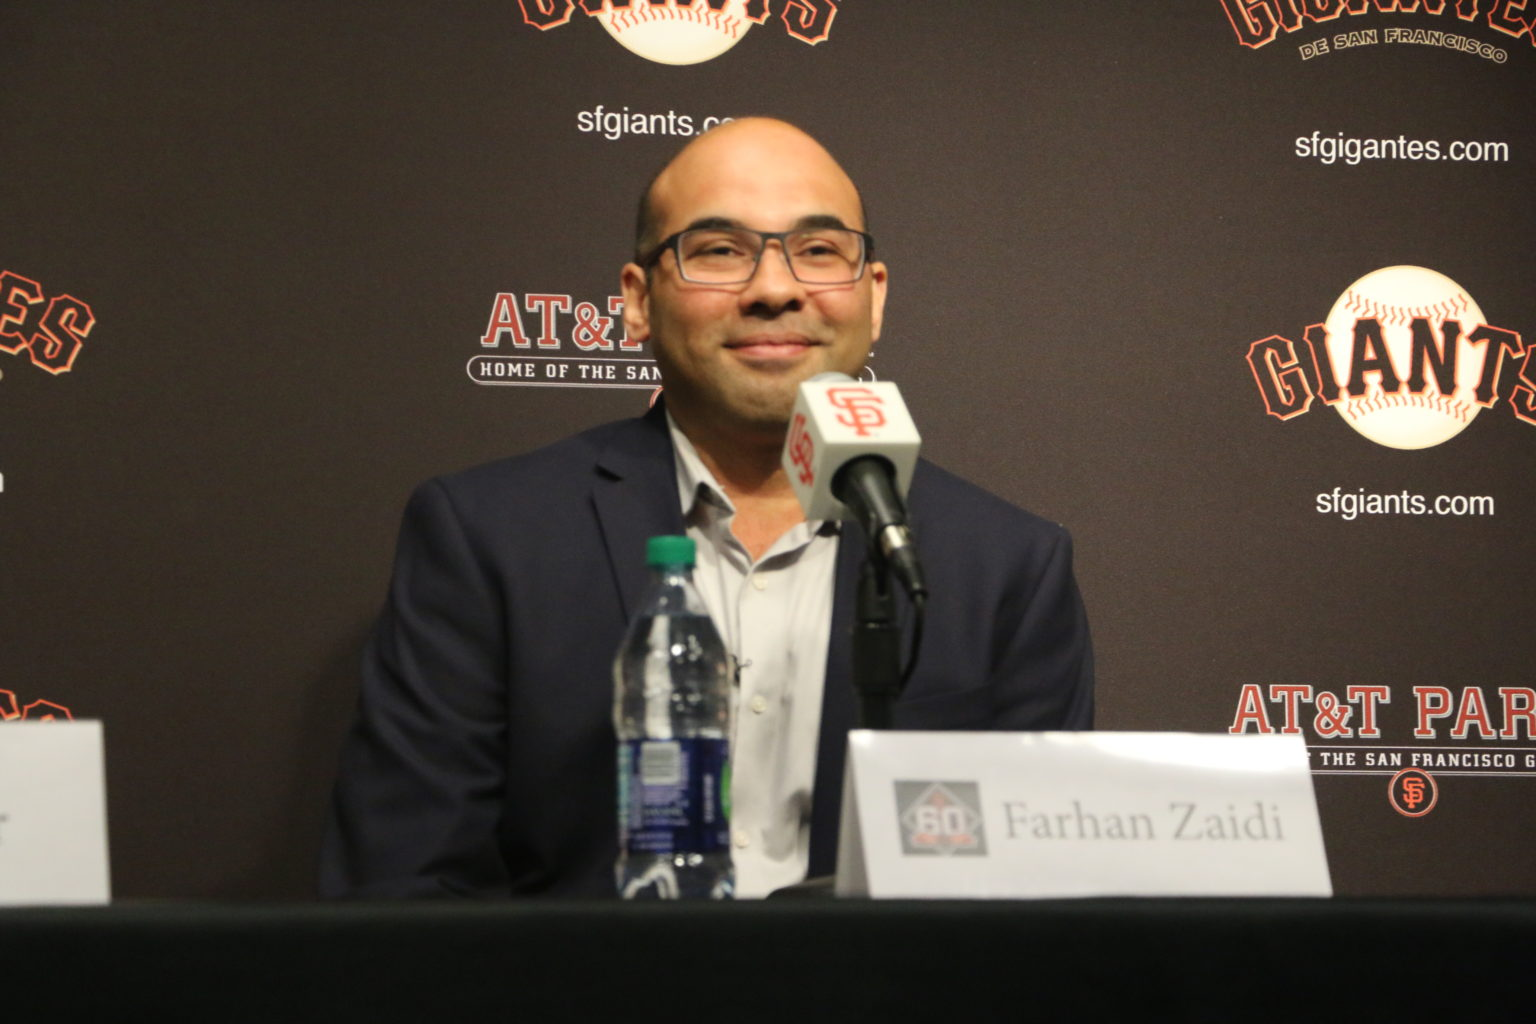 Farhan Zaidi addresses the media as he is introduced as the new San Francisco Giants President of Baseball Operations on Nov. 7, 2018. (Ryan Gorcey / S.F. Examiner)